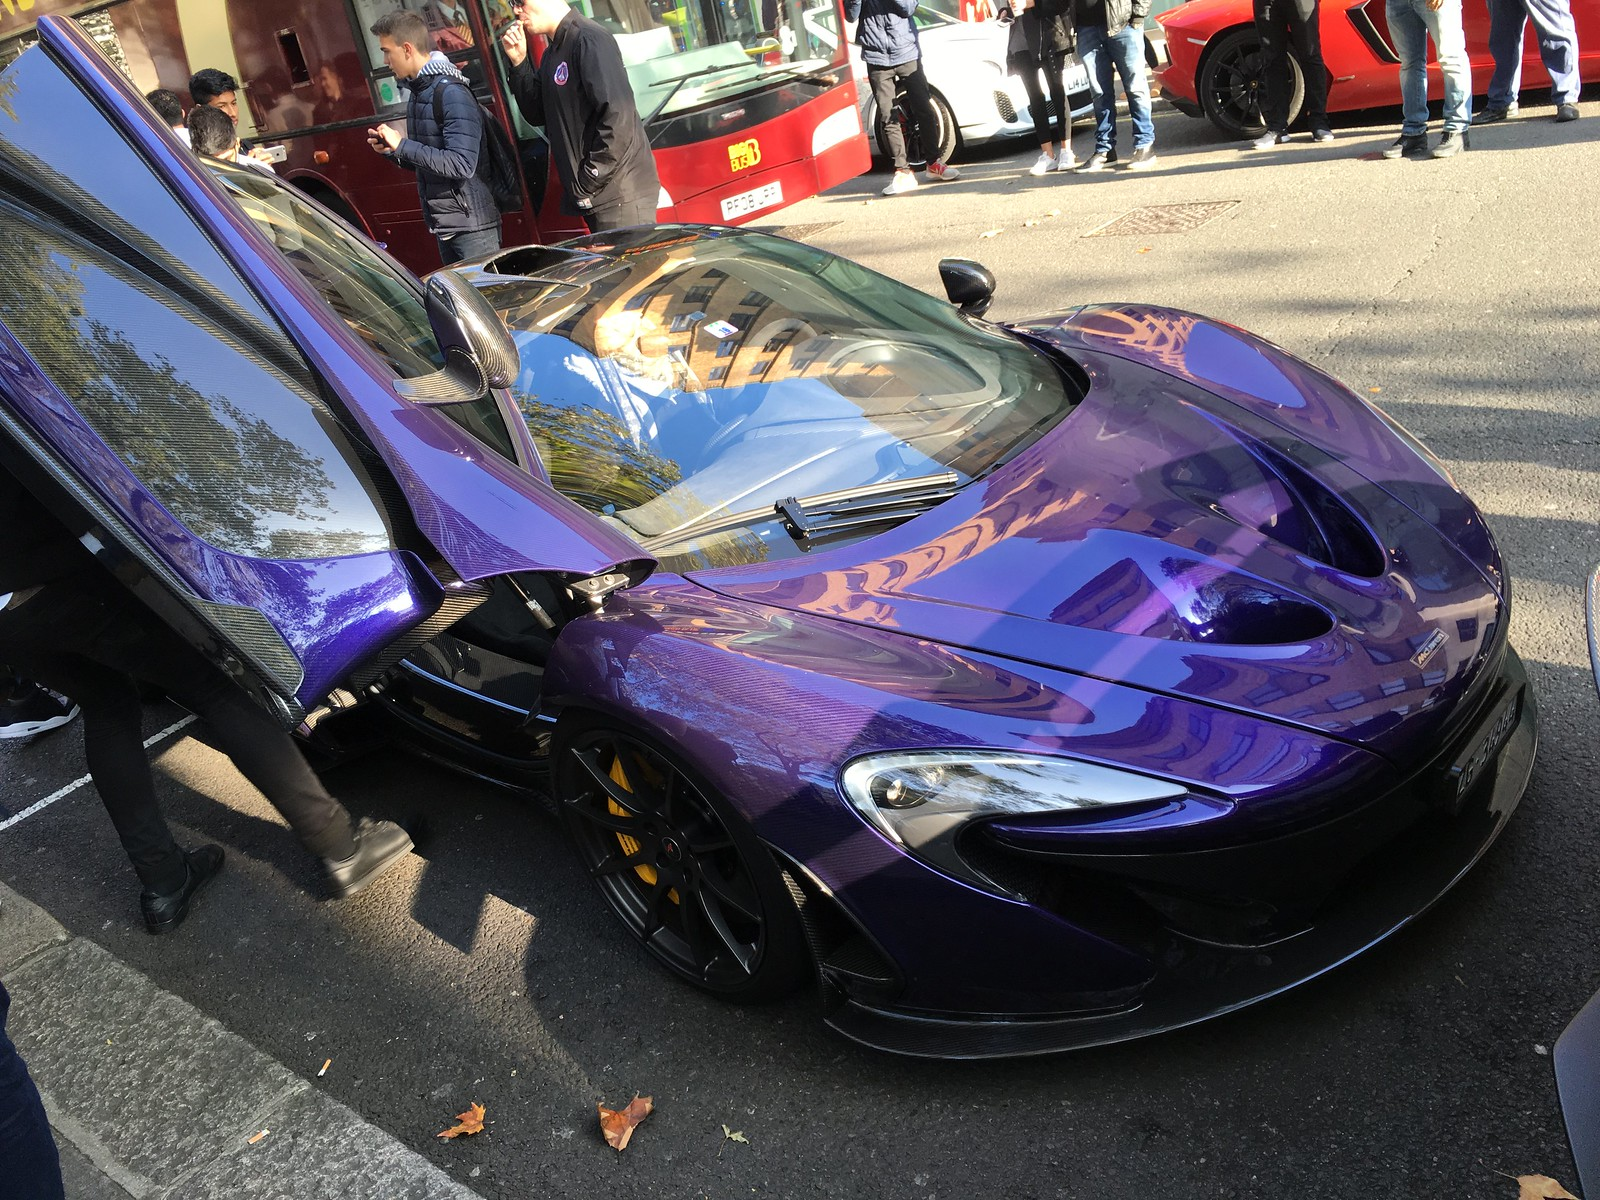 Supercar Sunday in Berkeley Square